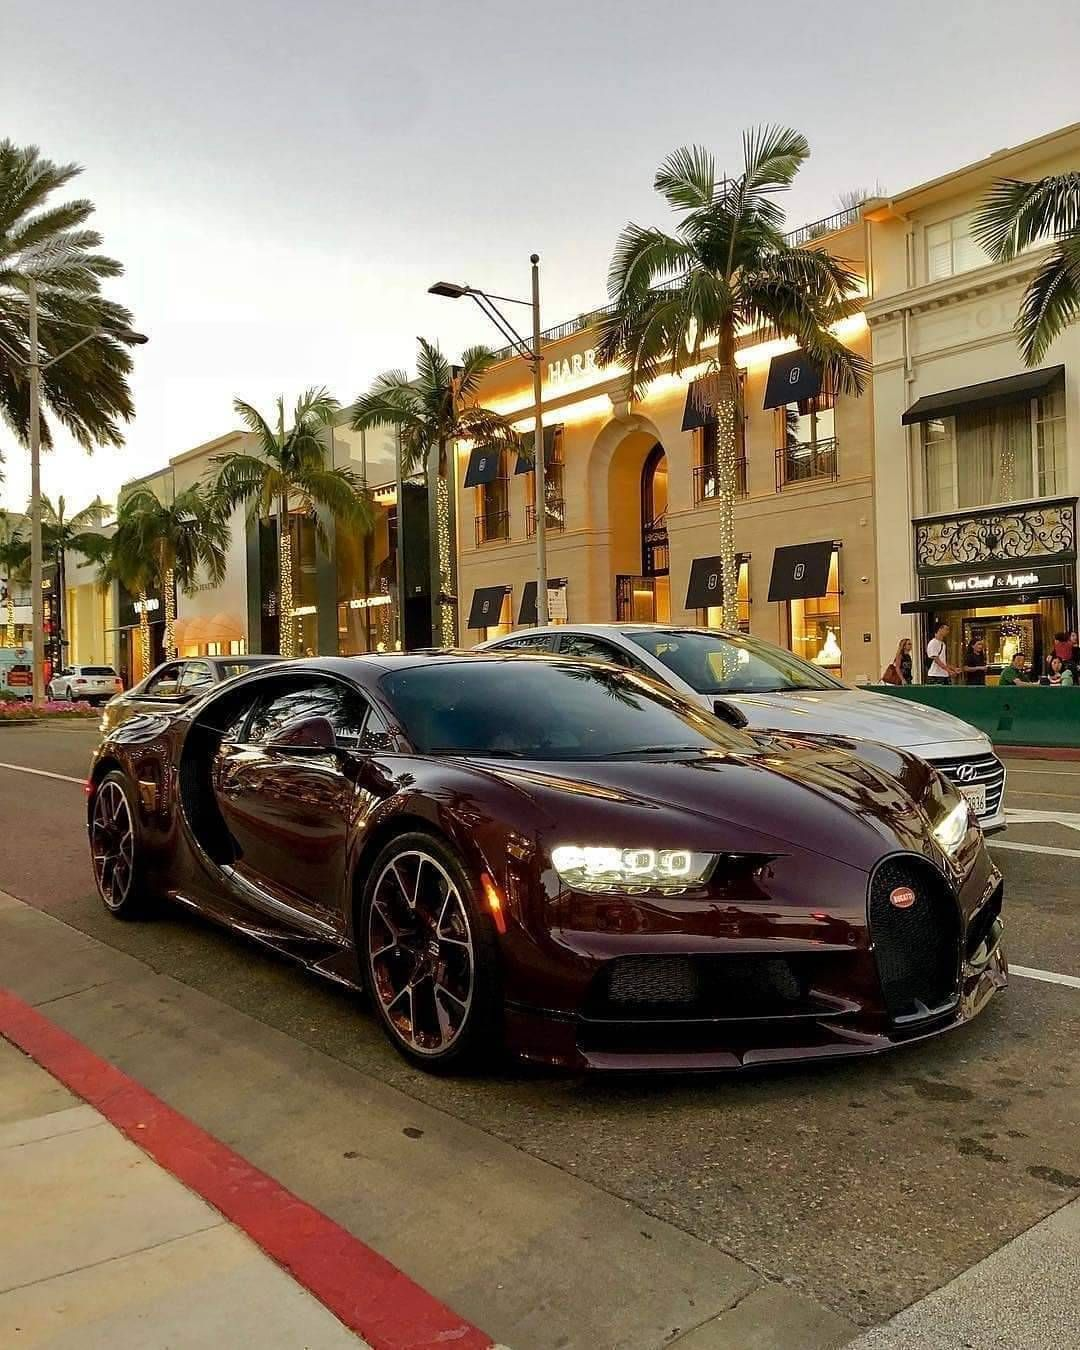 Spotted Via Reddit With Images Bugatti Cars Car In The World Cars Bugatti Veyron